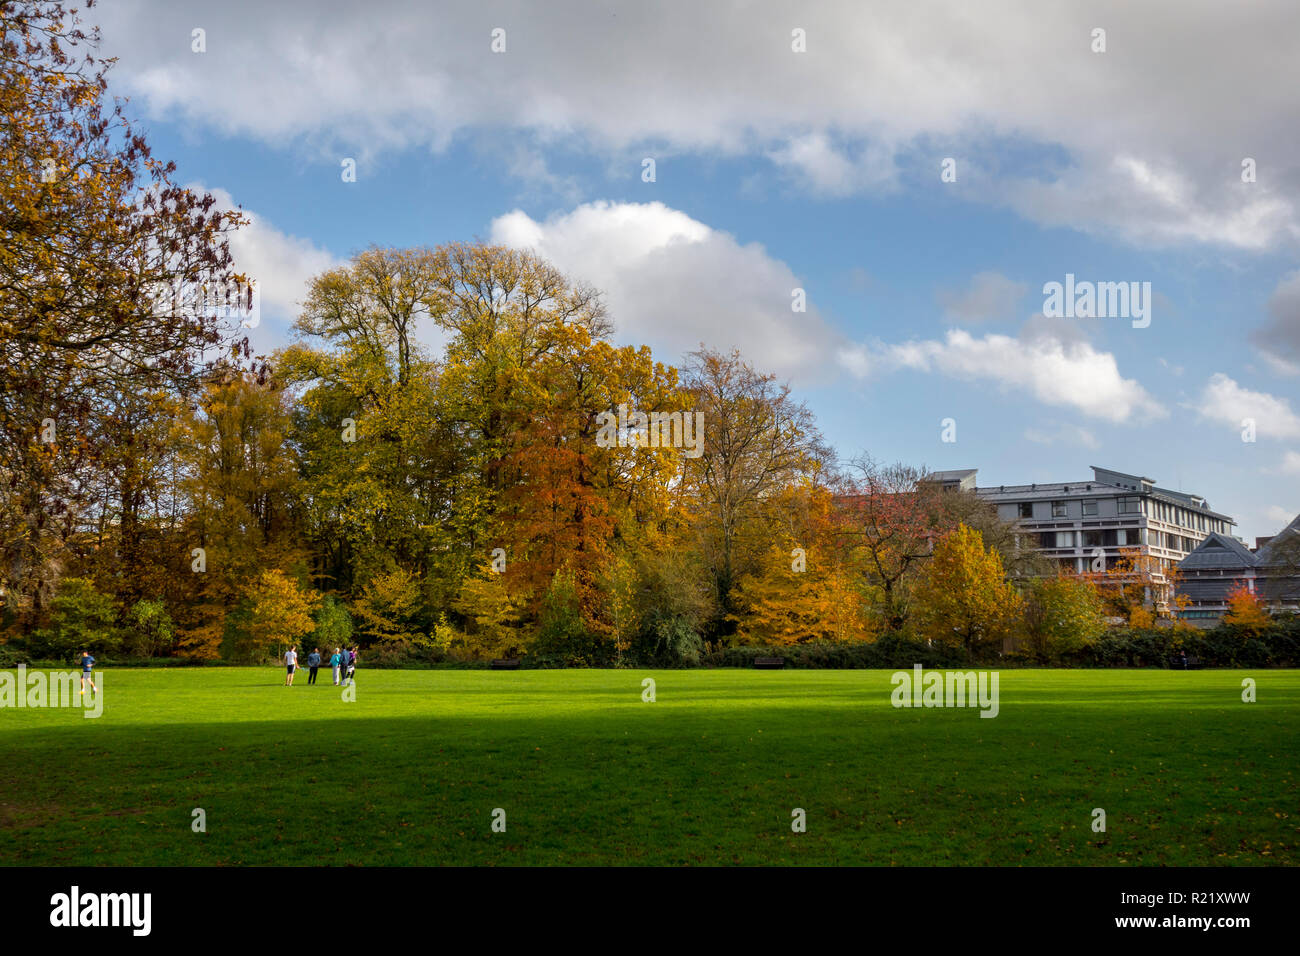 The Backs in Cambridge with Queens' College, Fitzpatrick Hall University of Cambridge in the background. Cambridge, UK - Stock Image